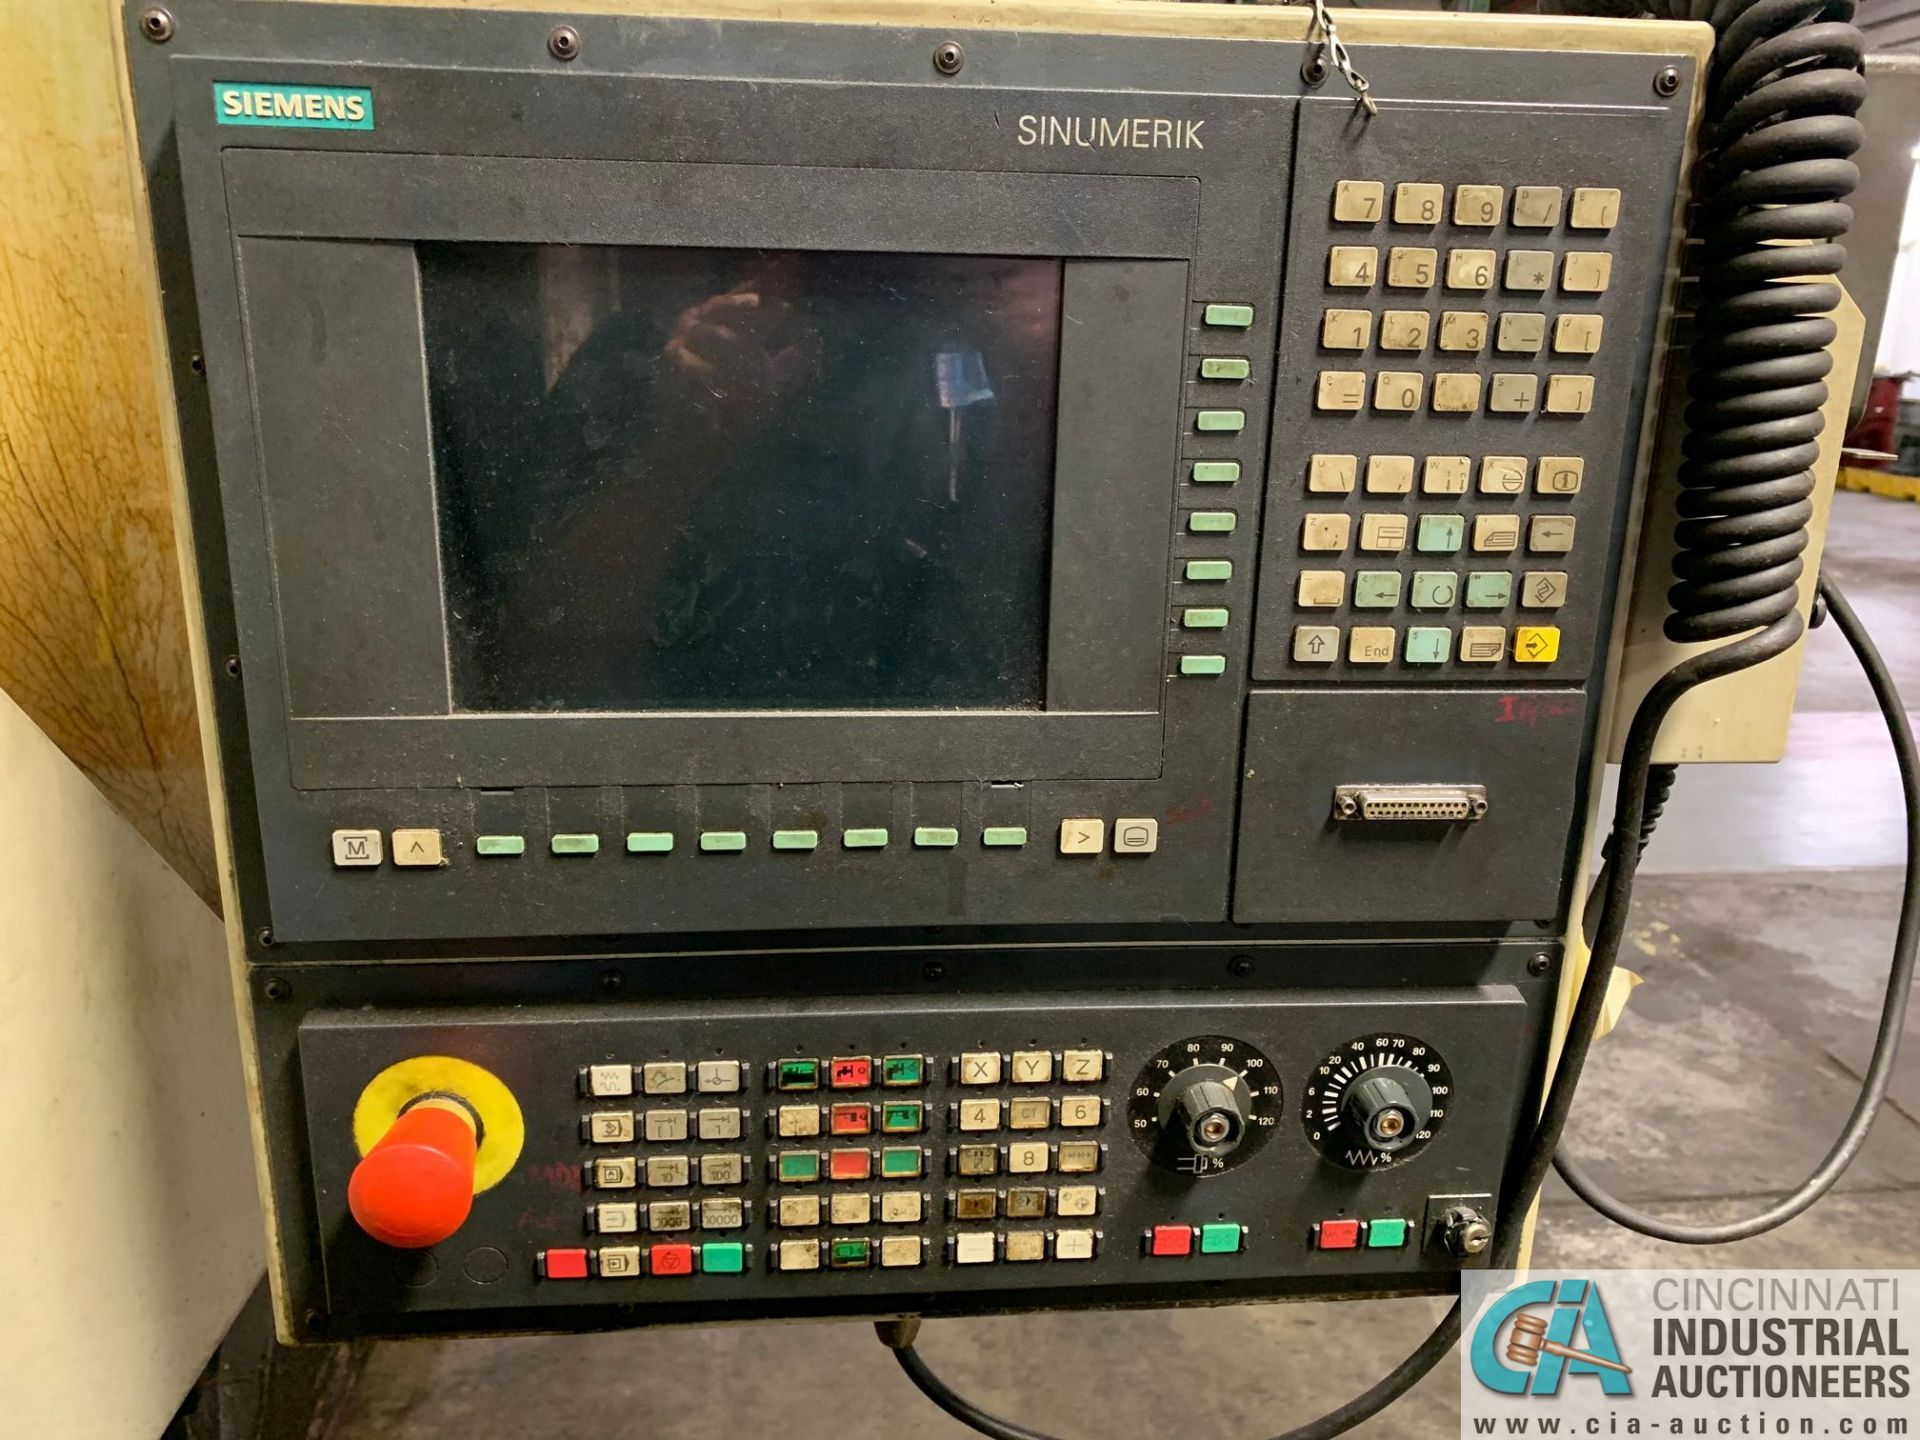 MONARCH UNISIGN TYPE UNIVERS 4 ZONALL 4 CNC VERTICAL MACHINING CENTER; S/N 99Z403, NO. 4293, - Image 5 of 13